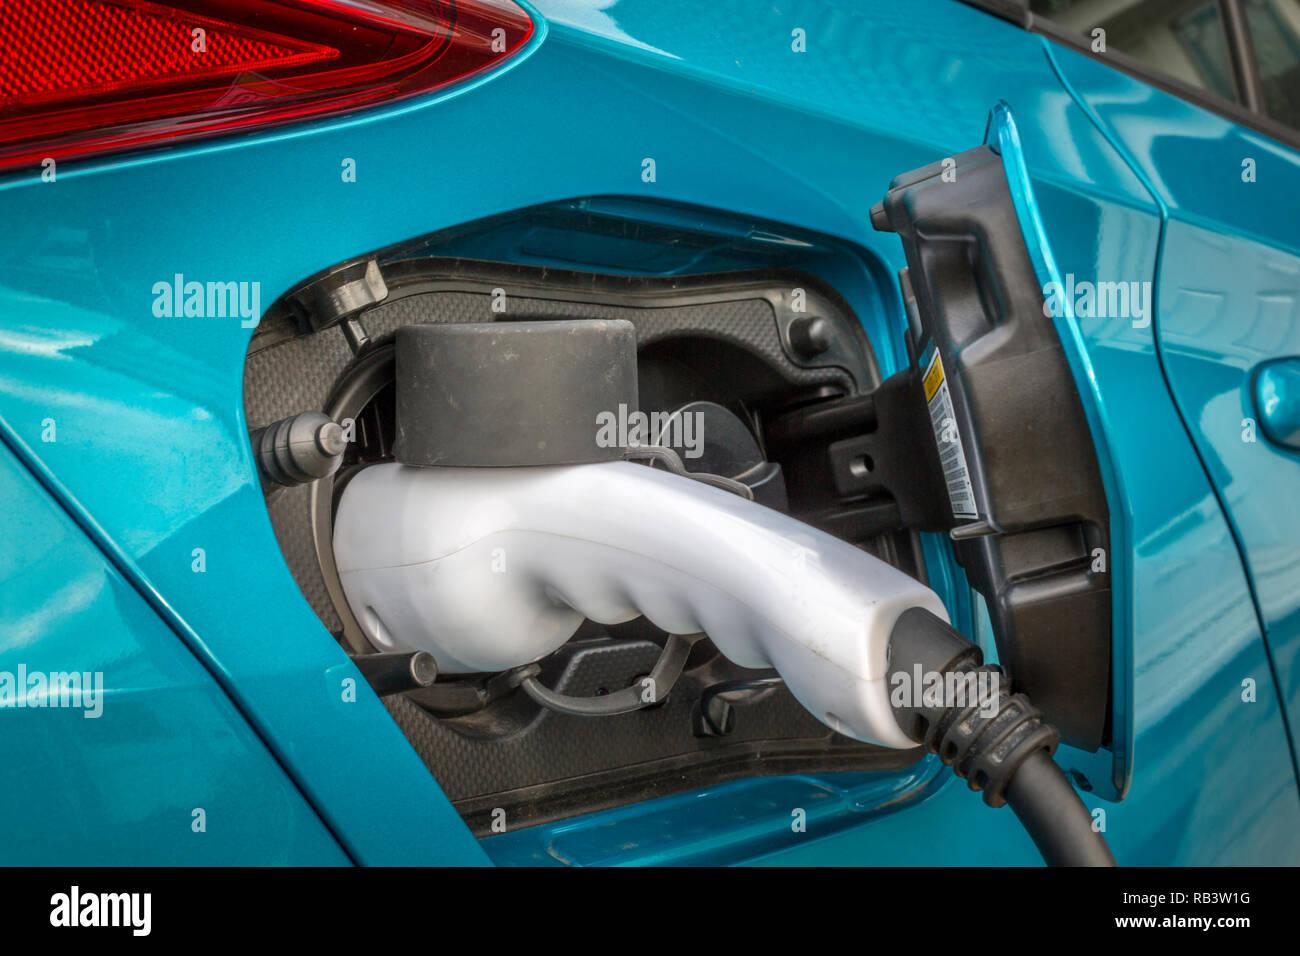 Electric car on charge - Stock Image